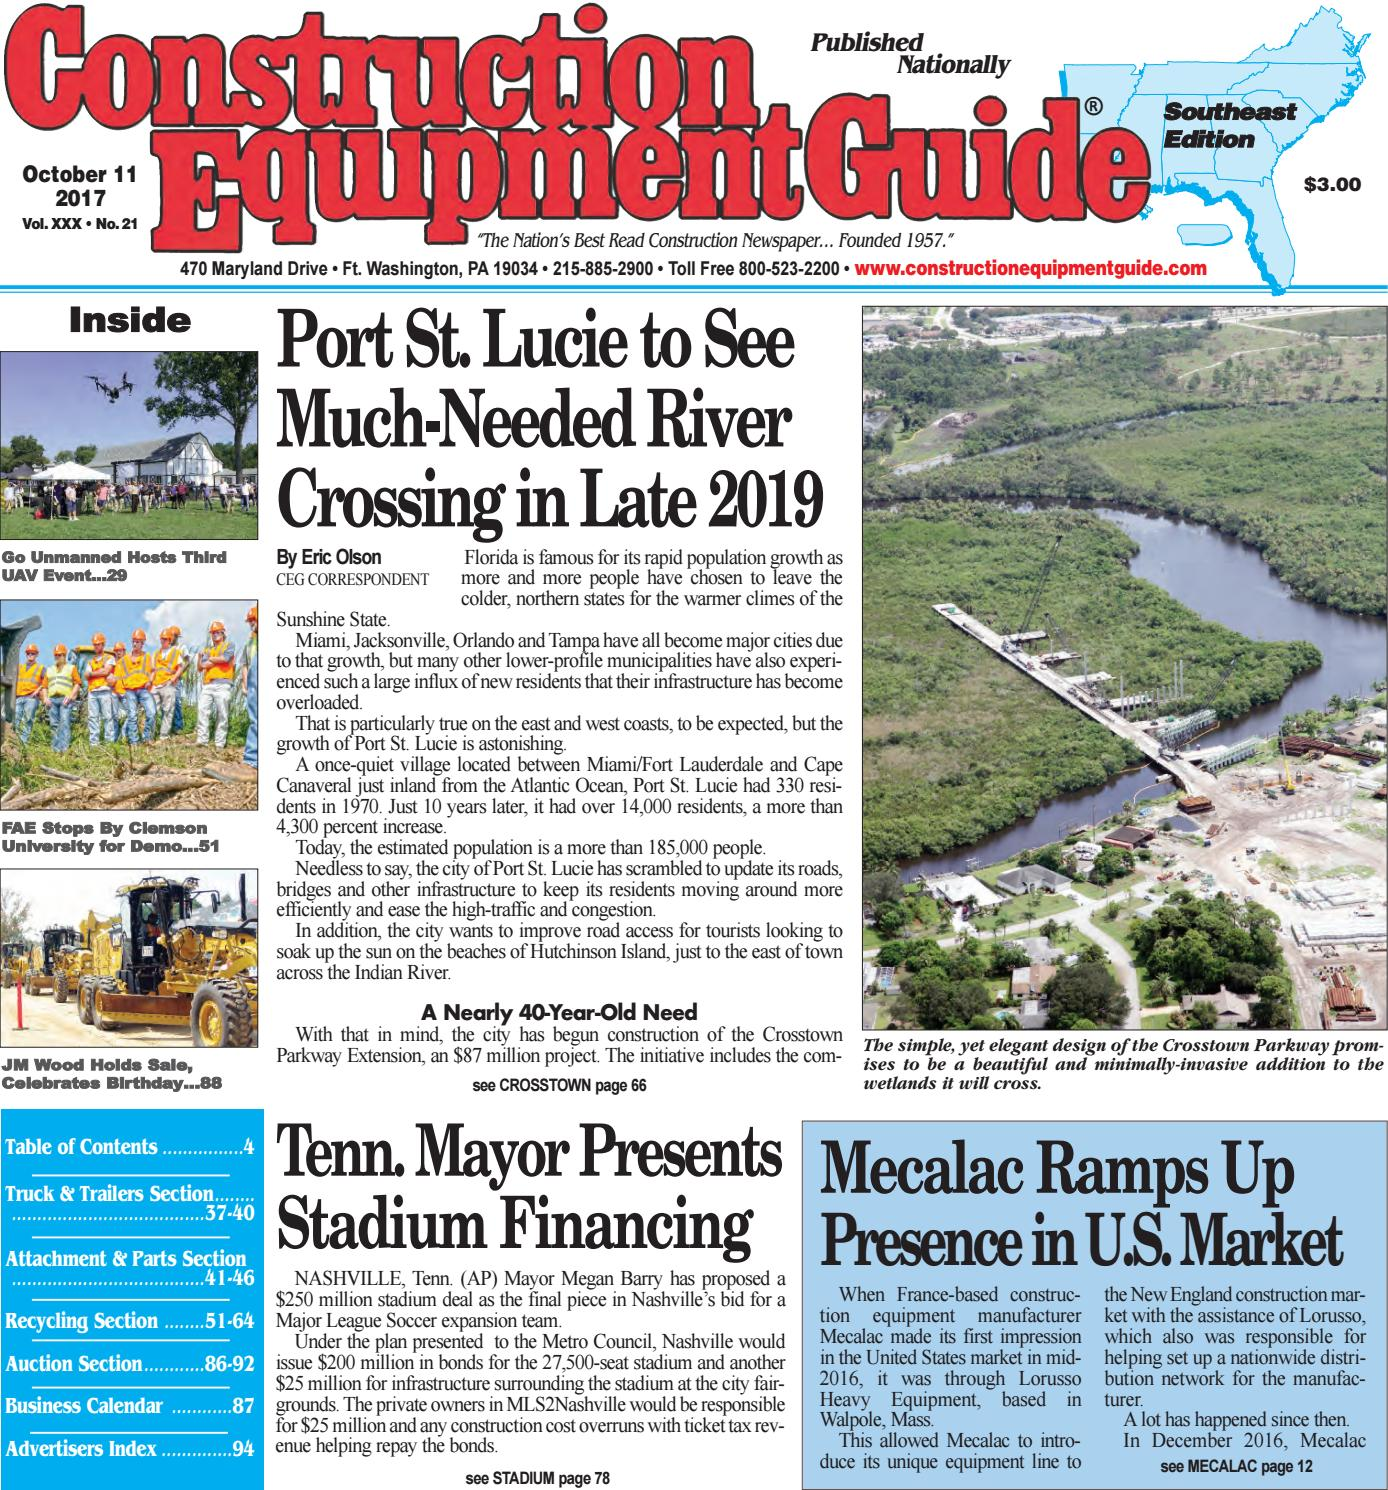 southeast 21 october 11 2017 by construction equipment guide issuu